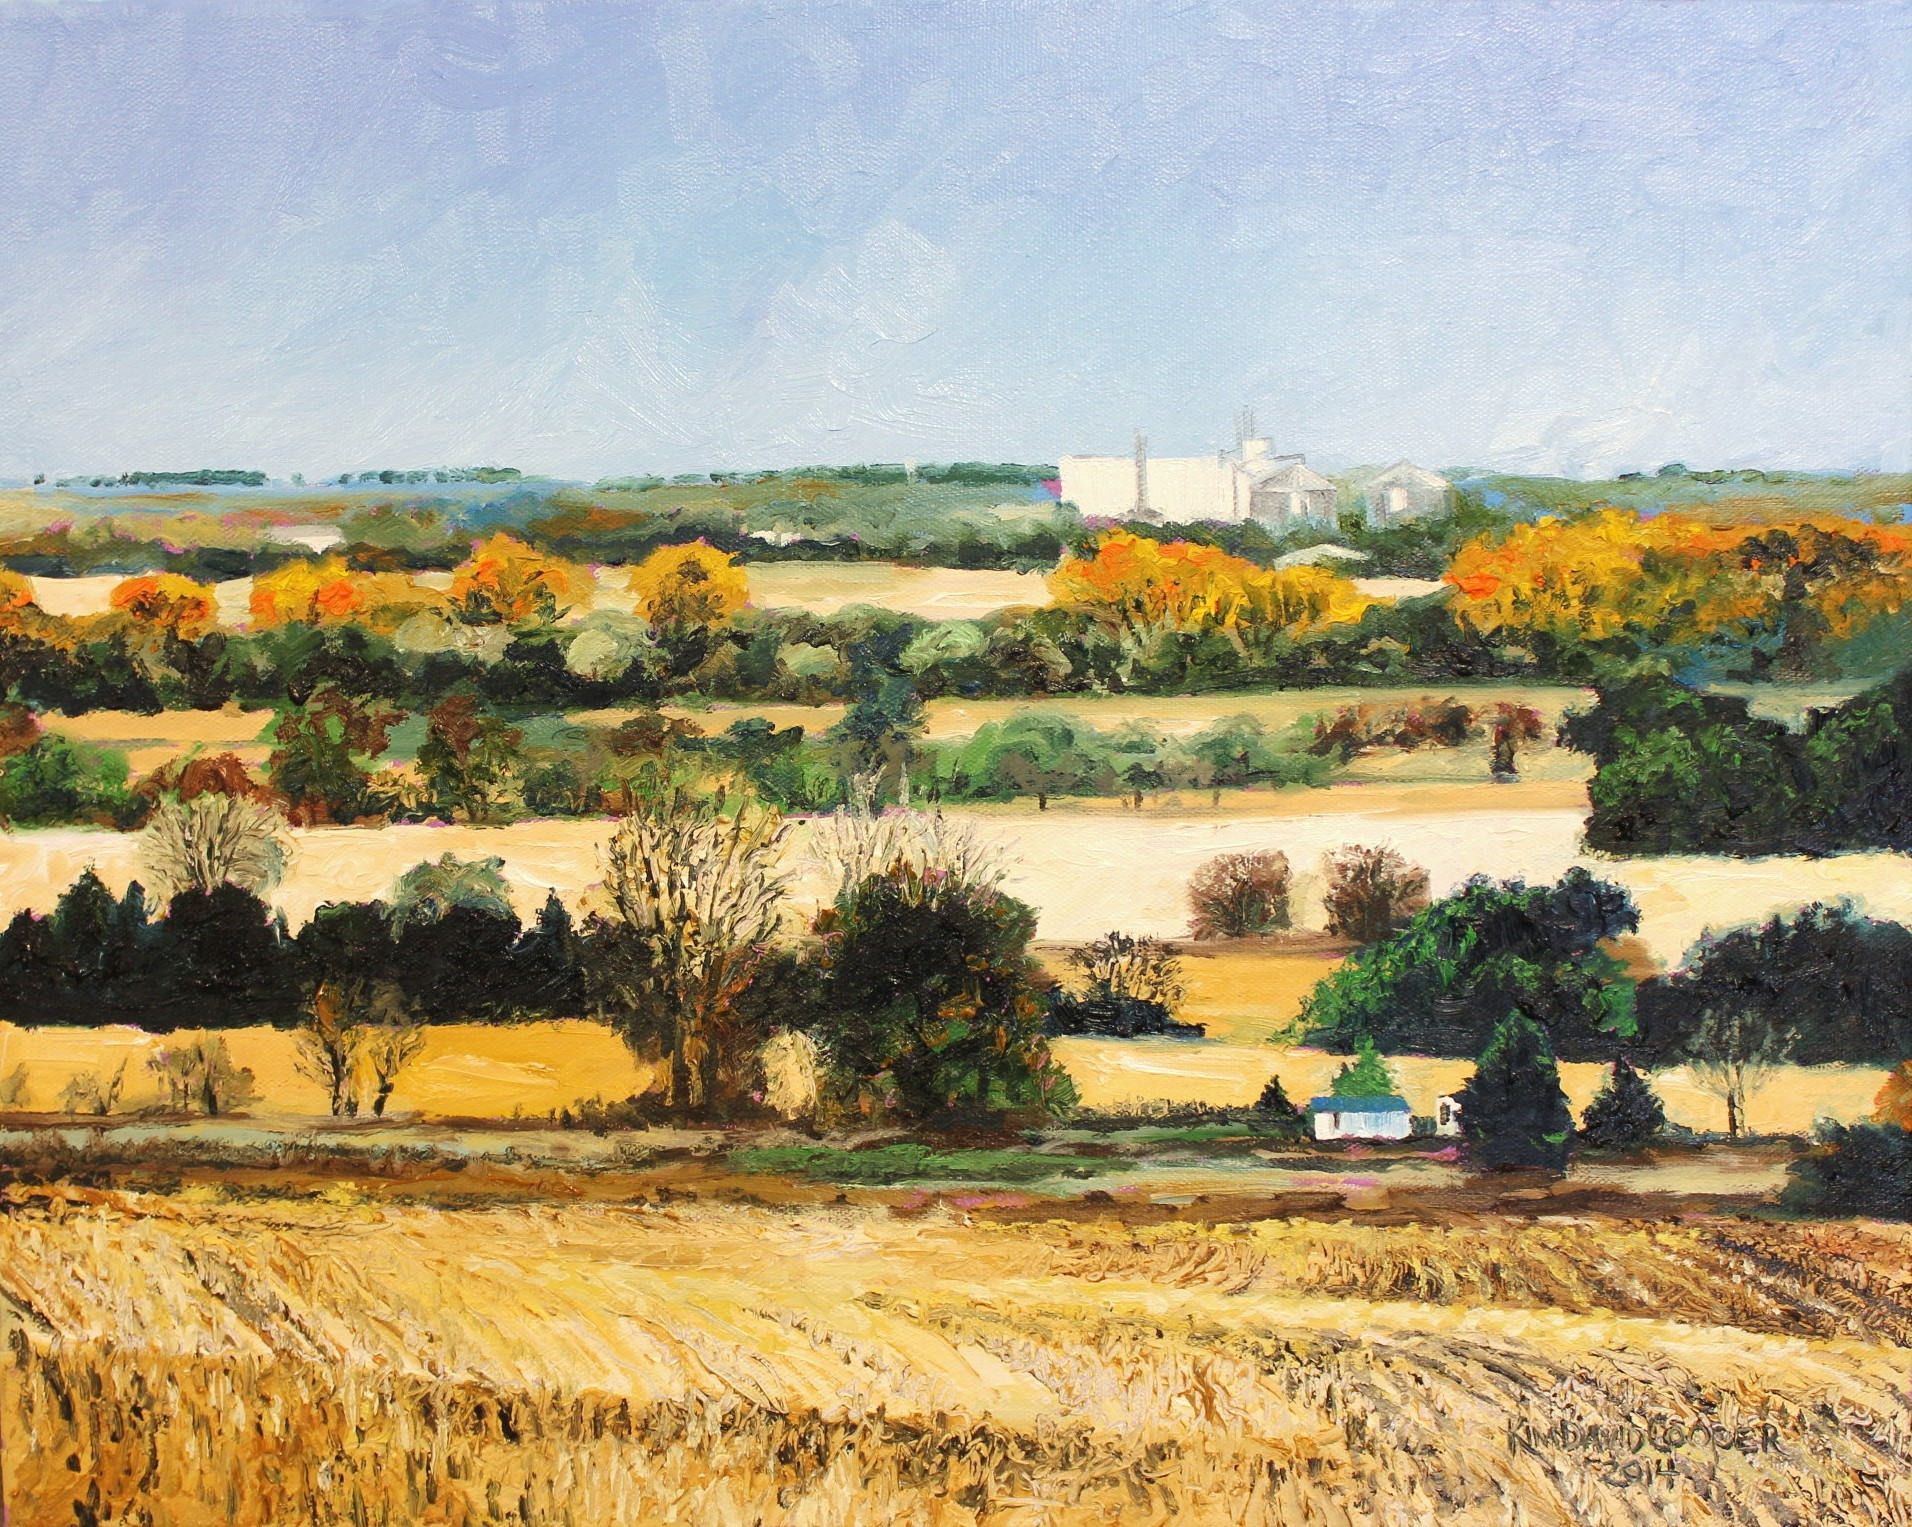 October Nebraska 16x20, oil on canvas Sold to Don and Lois Fick, Wahoo, NE